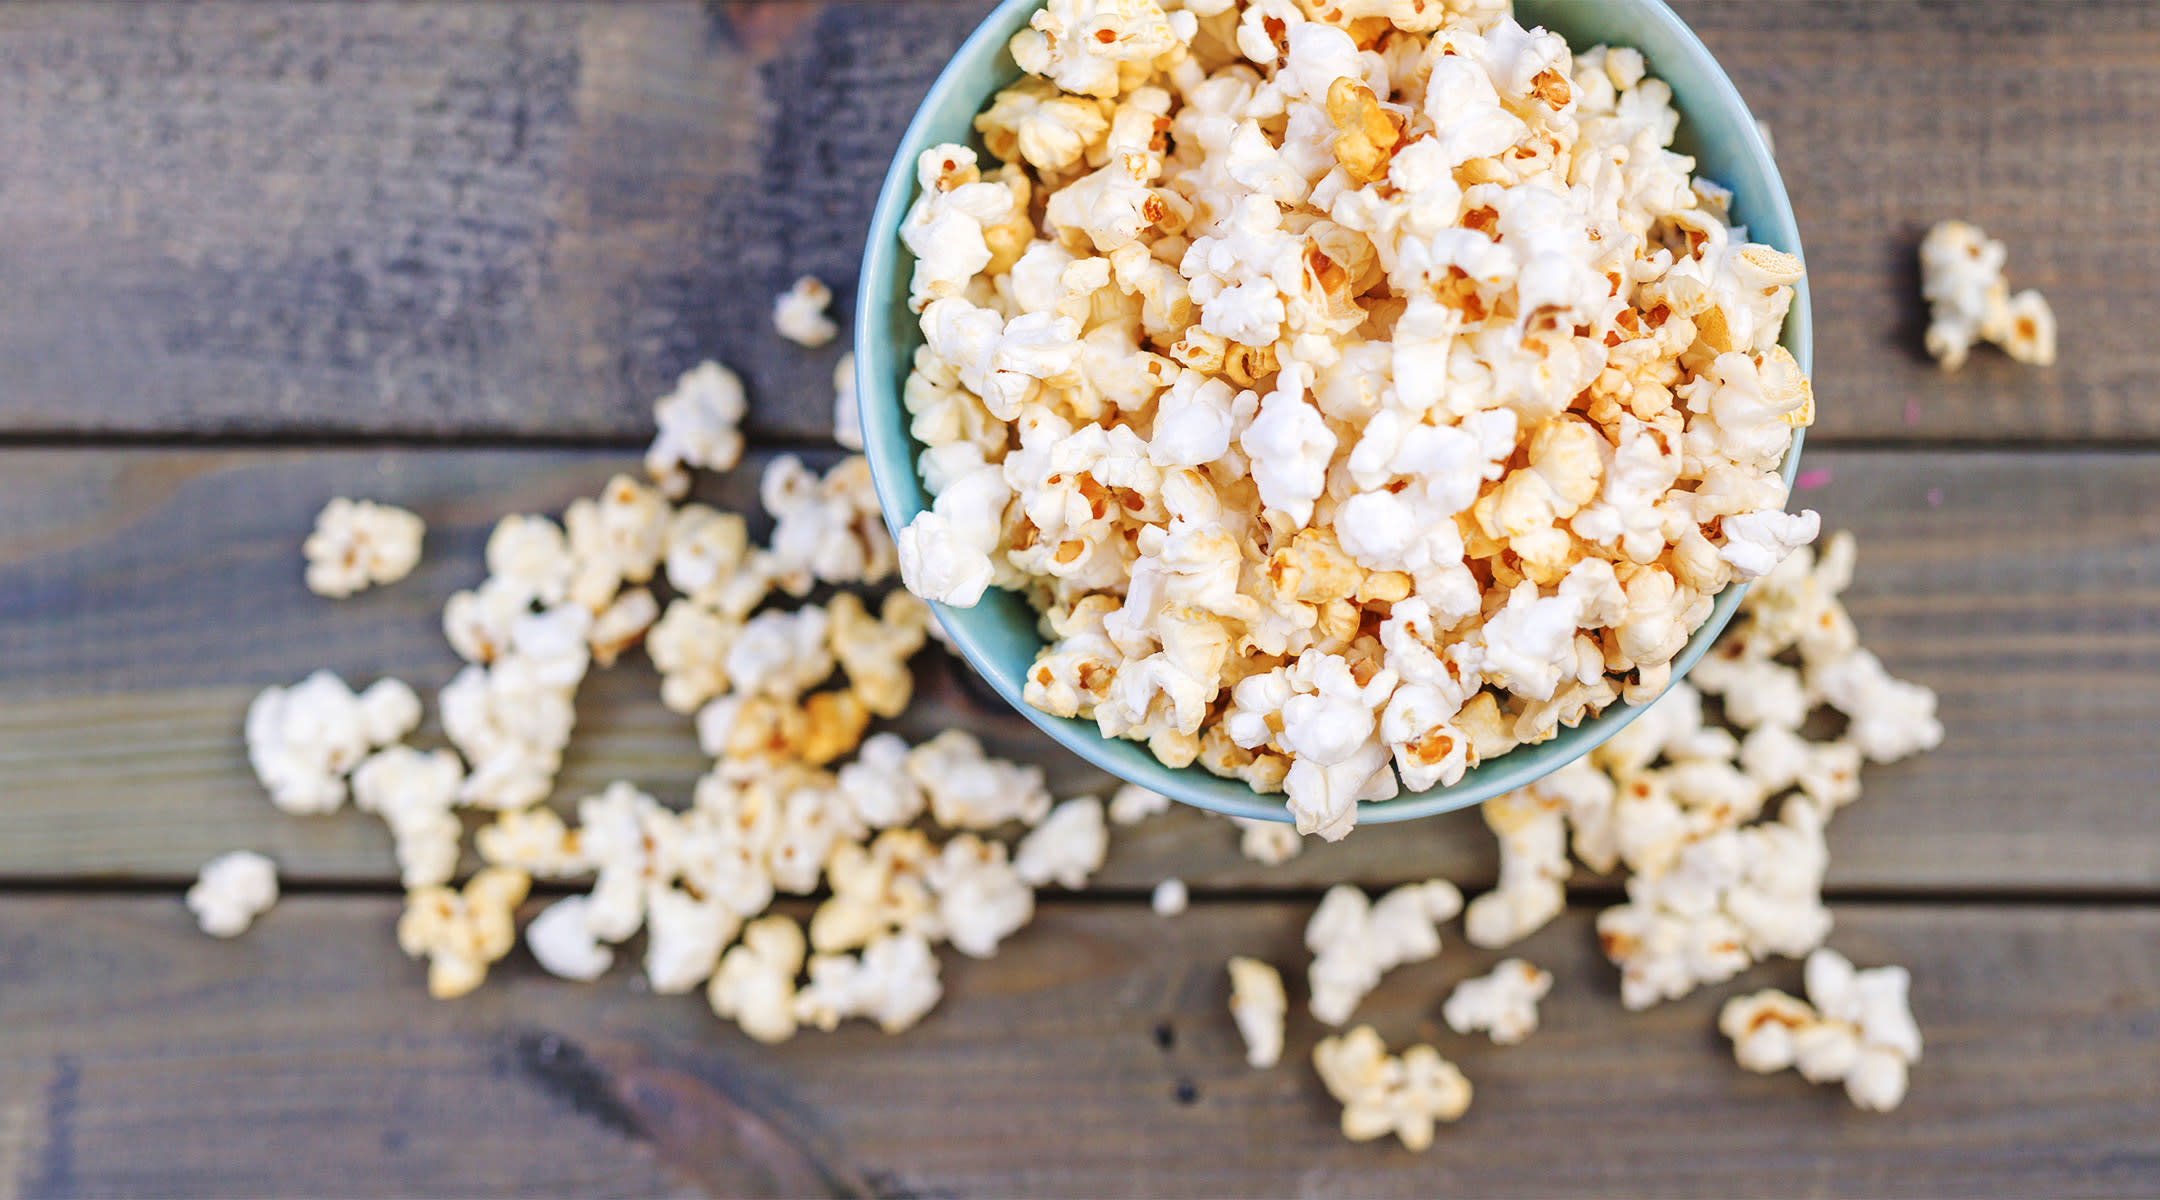 healthy pop-corn snack